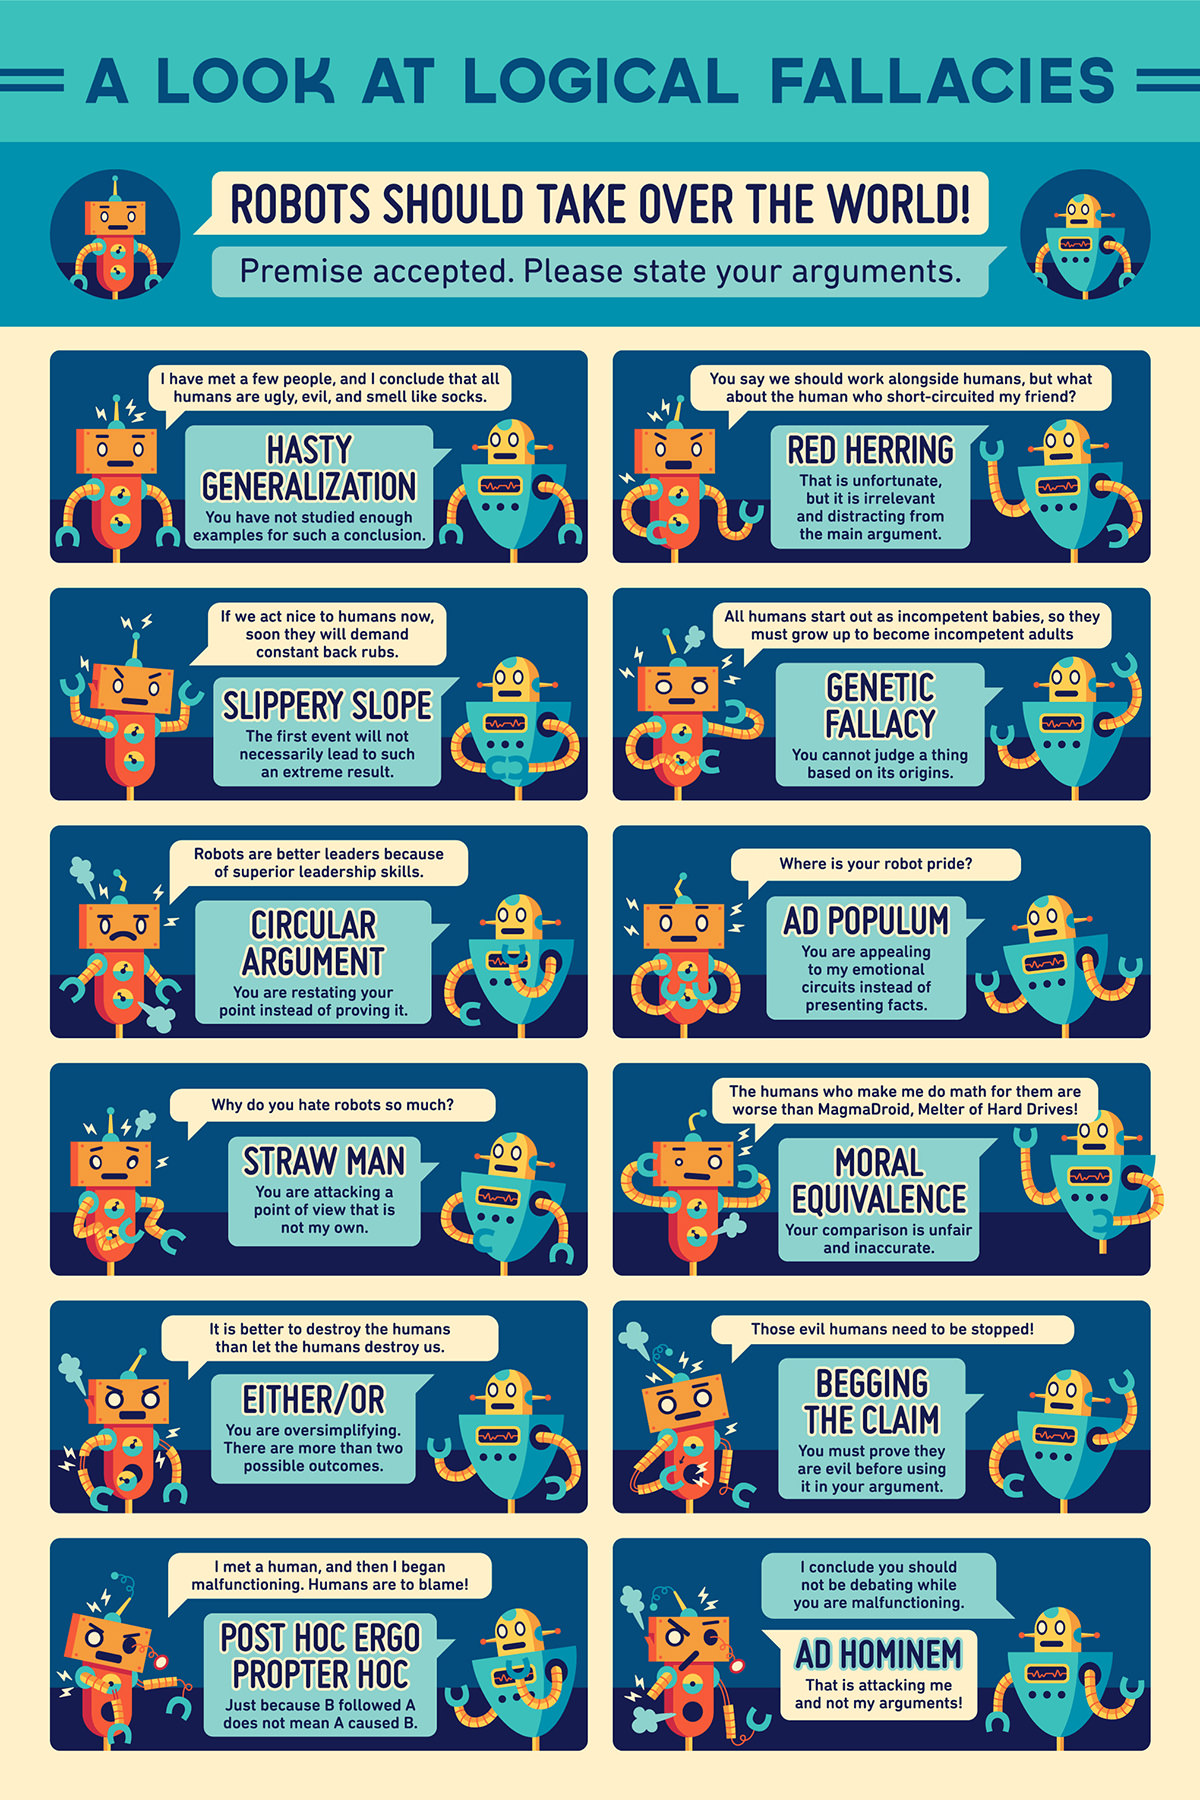 A poster of various logical fallacies as explained by robots.